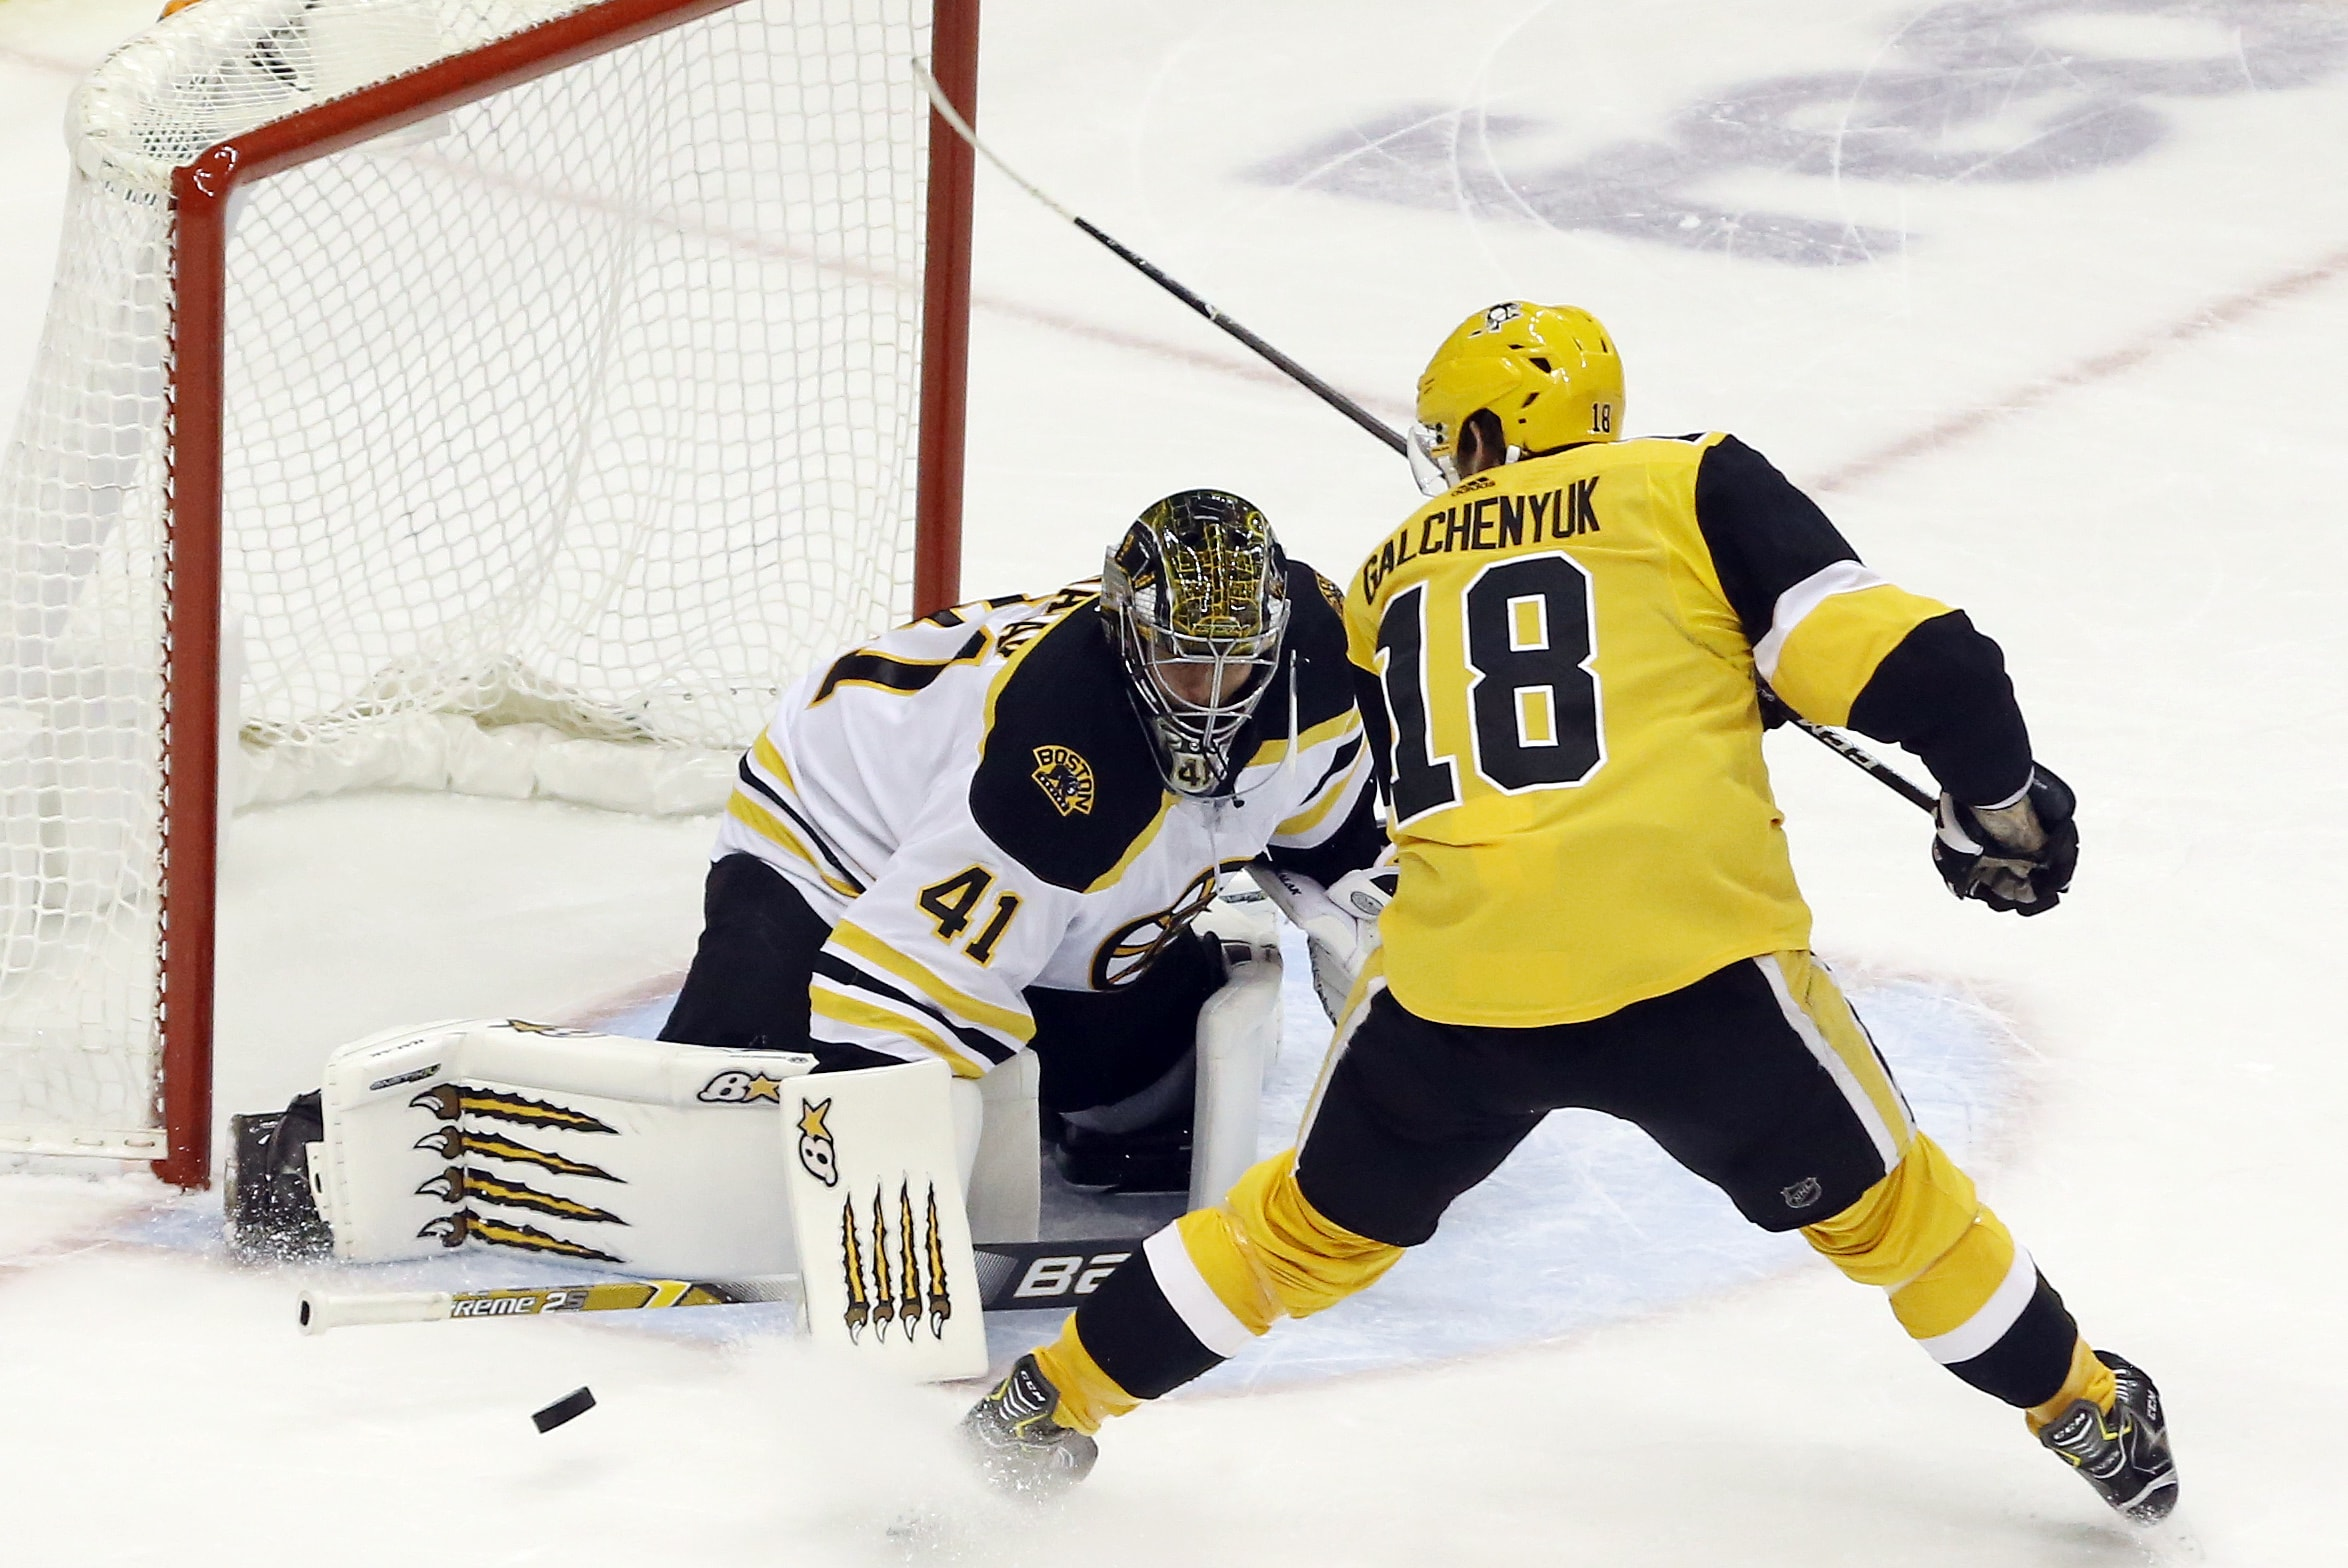 Bruins blow another three-goal lead, fall to Penguins